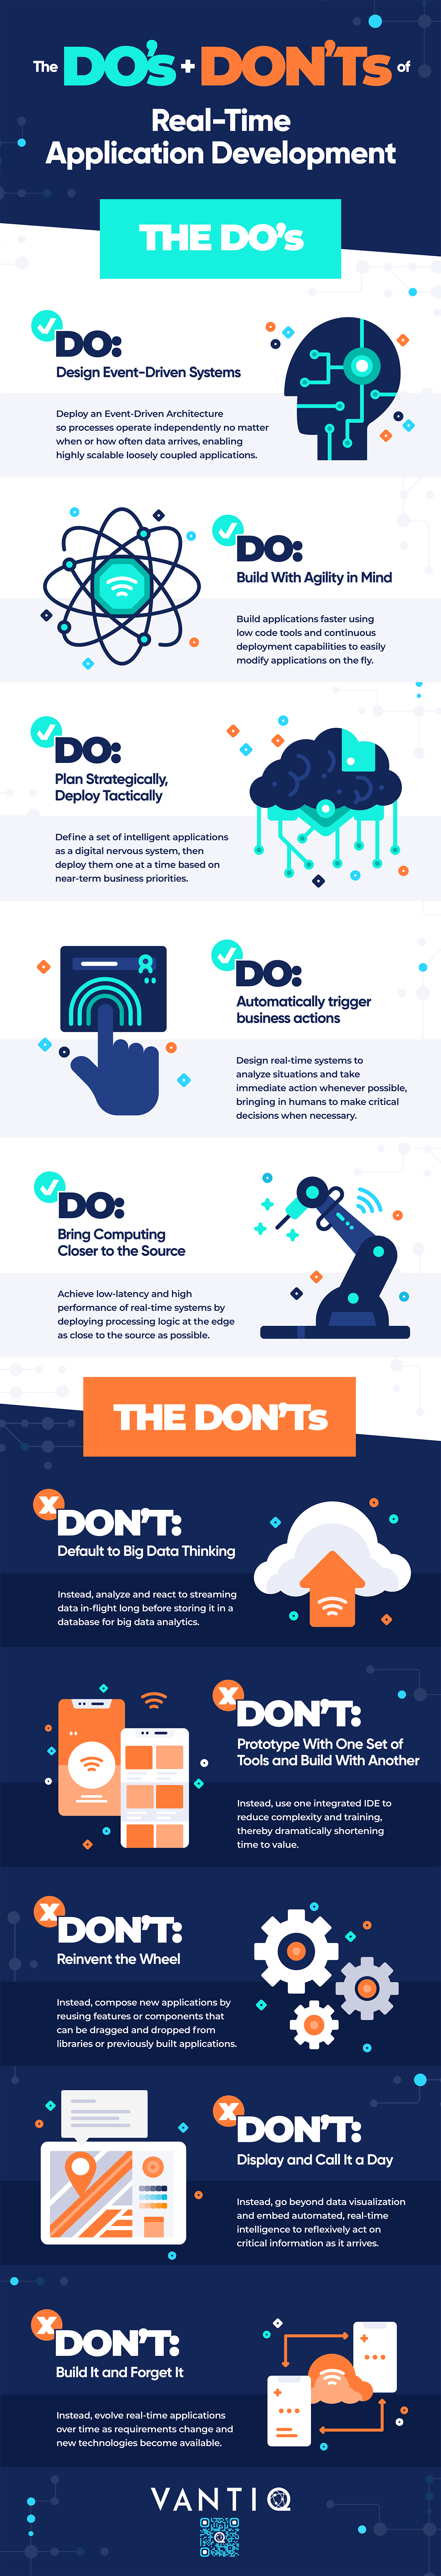 infographic the do's and dont's of real time application development